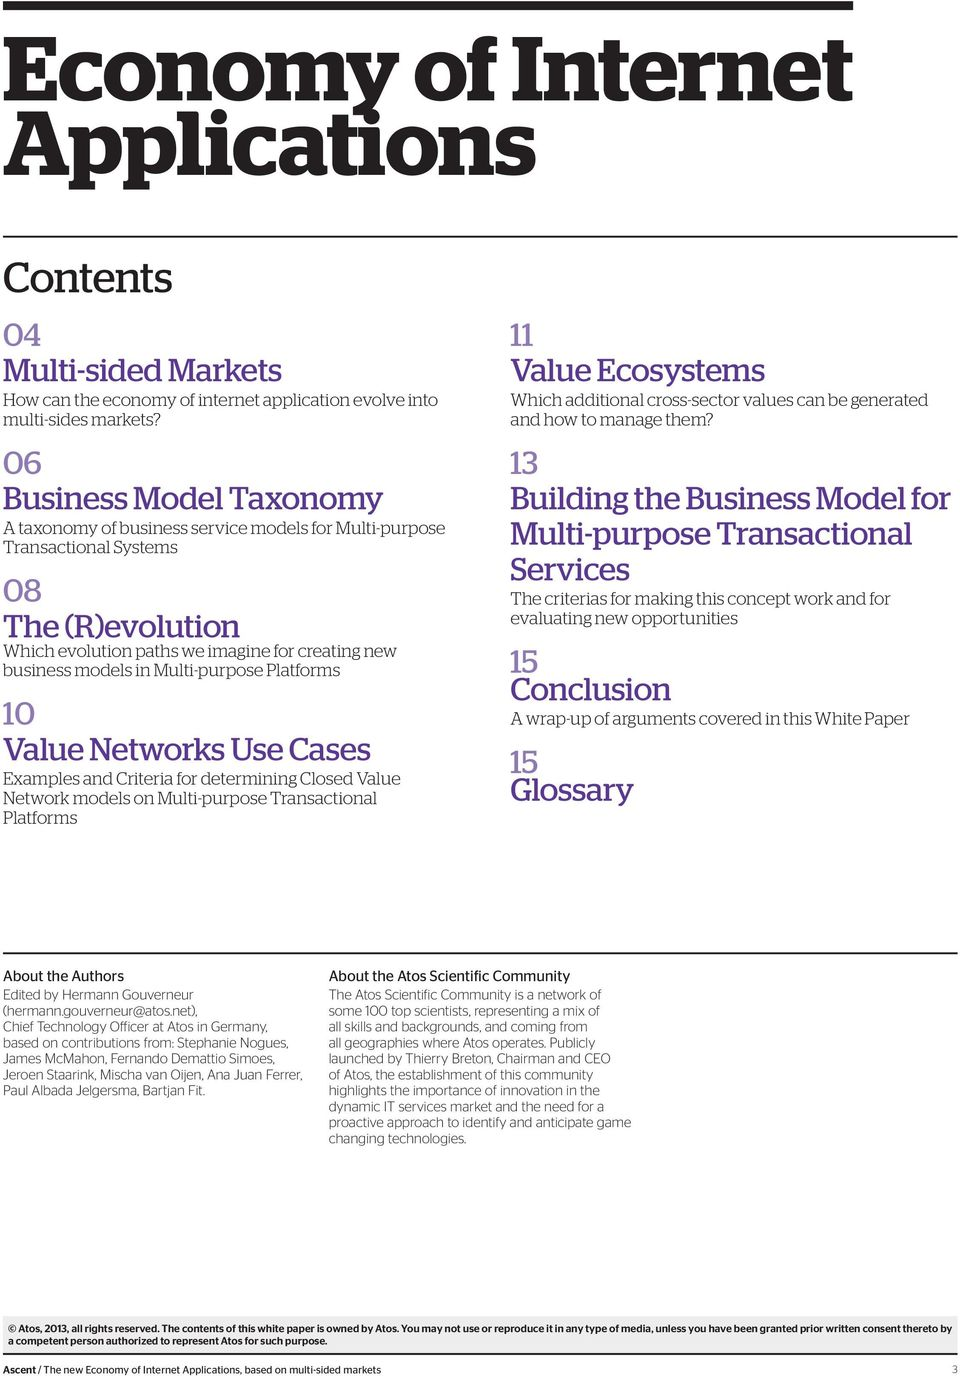 Multi-purpose Platforms 10 Value Networks Use Cases Examples and Criteria for determining Closed Value Network models on Multi-purpose Transactional Platforms 11 Value Ecosystems Which additional